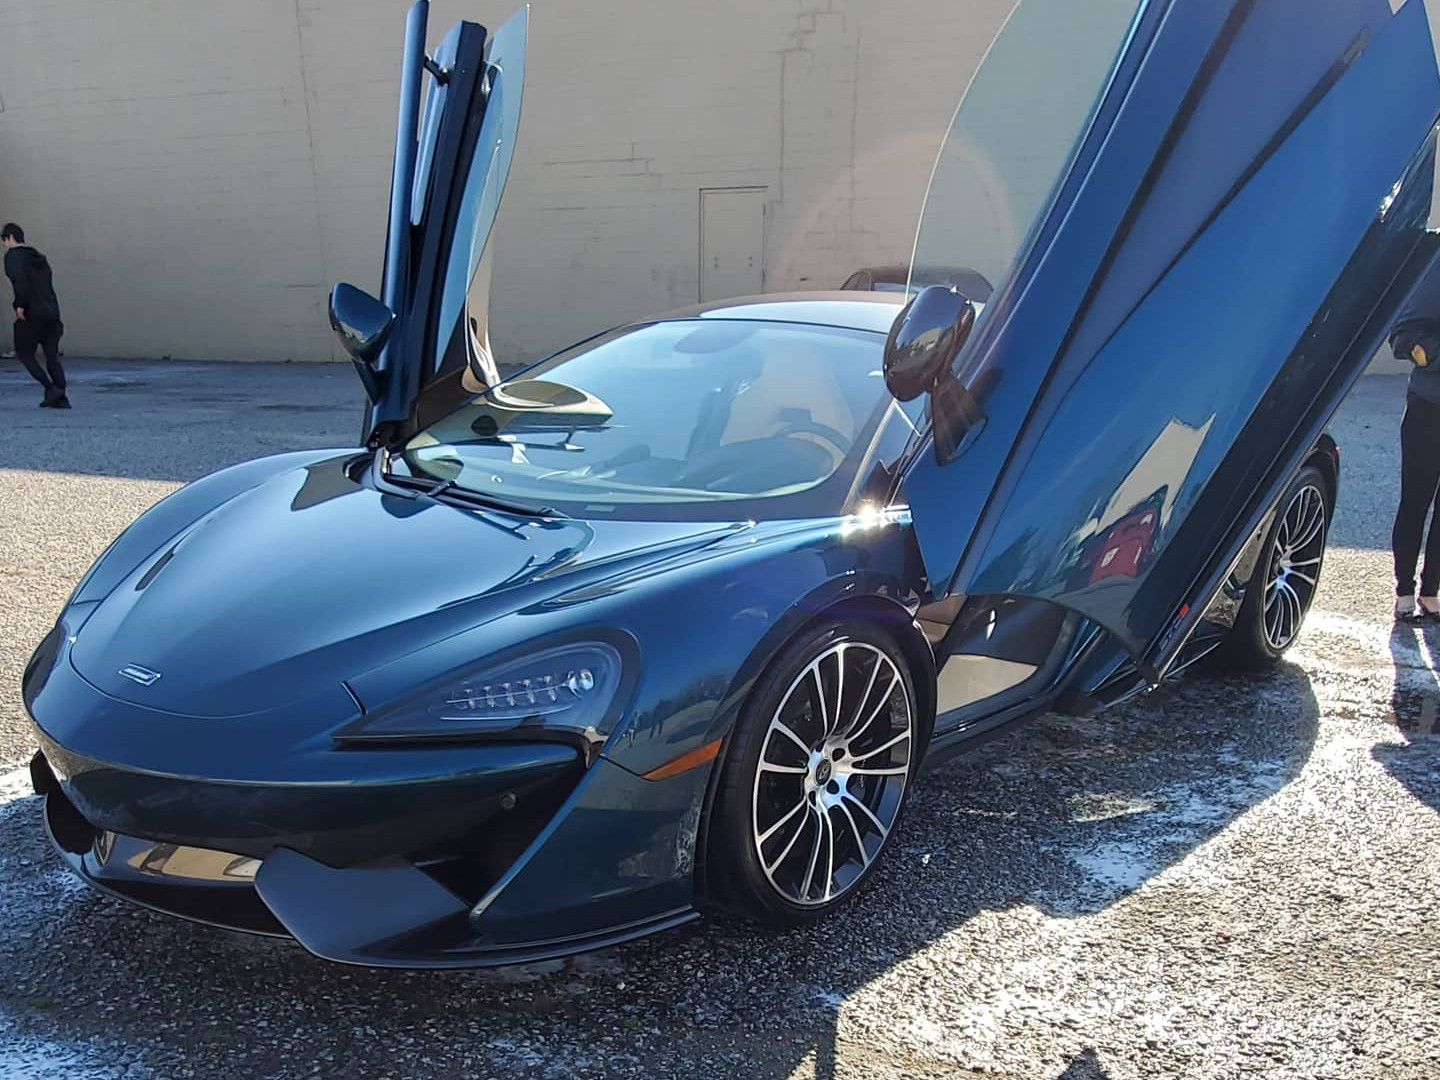 McLaren 570S received a wash and seal